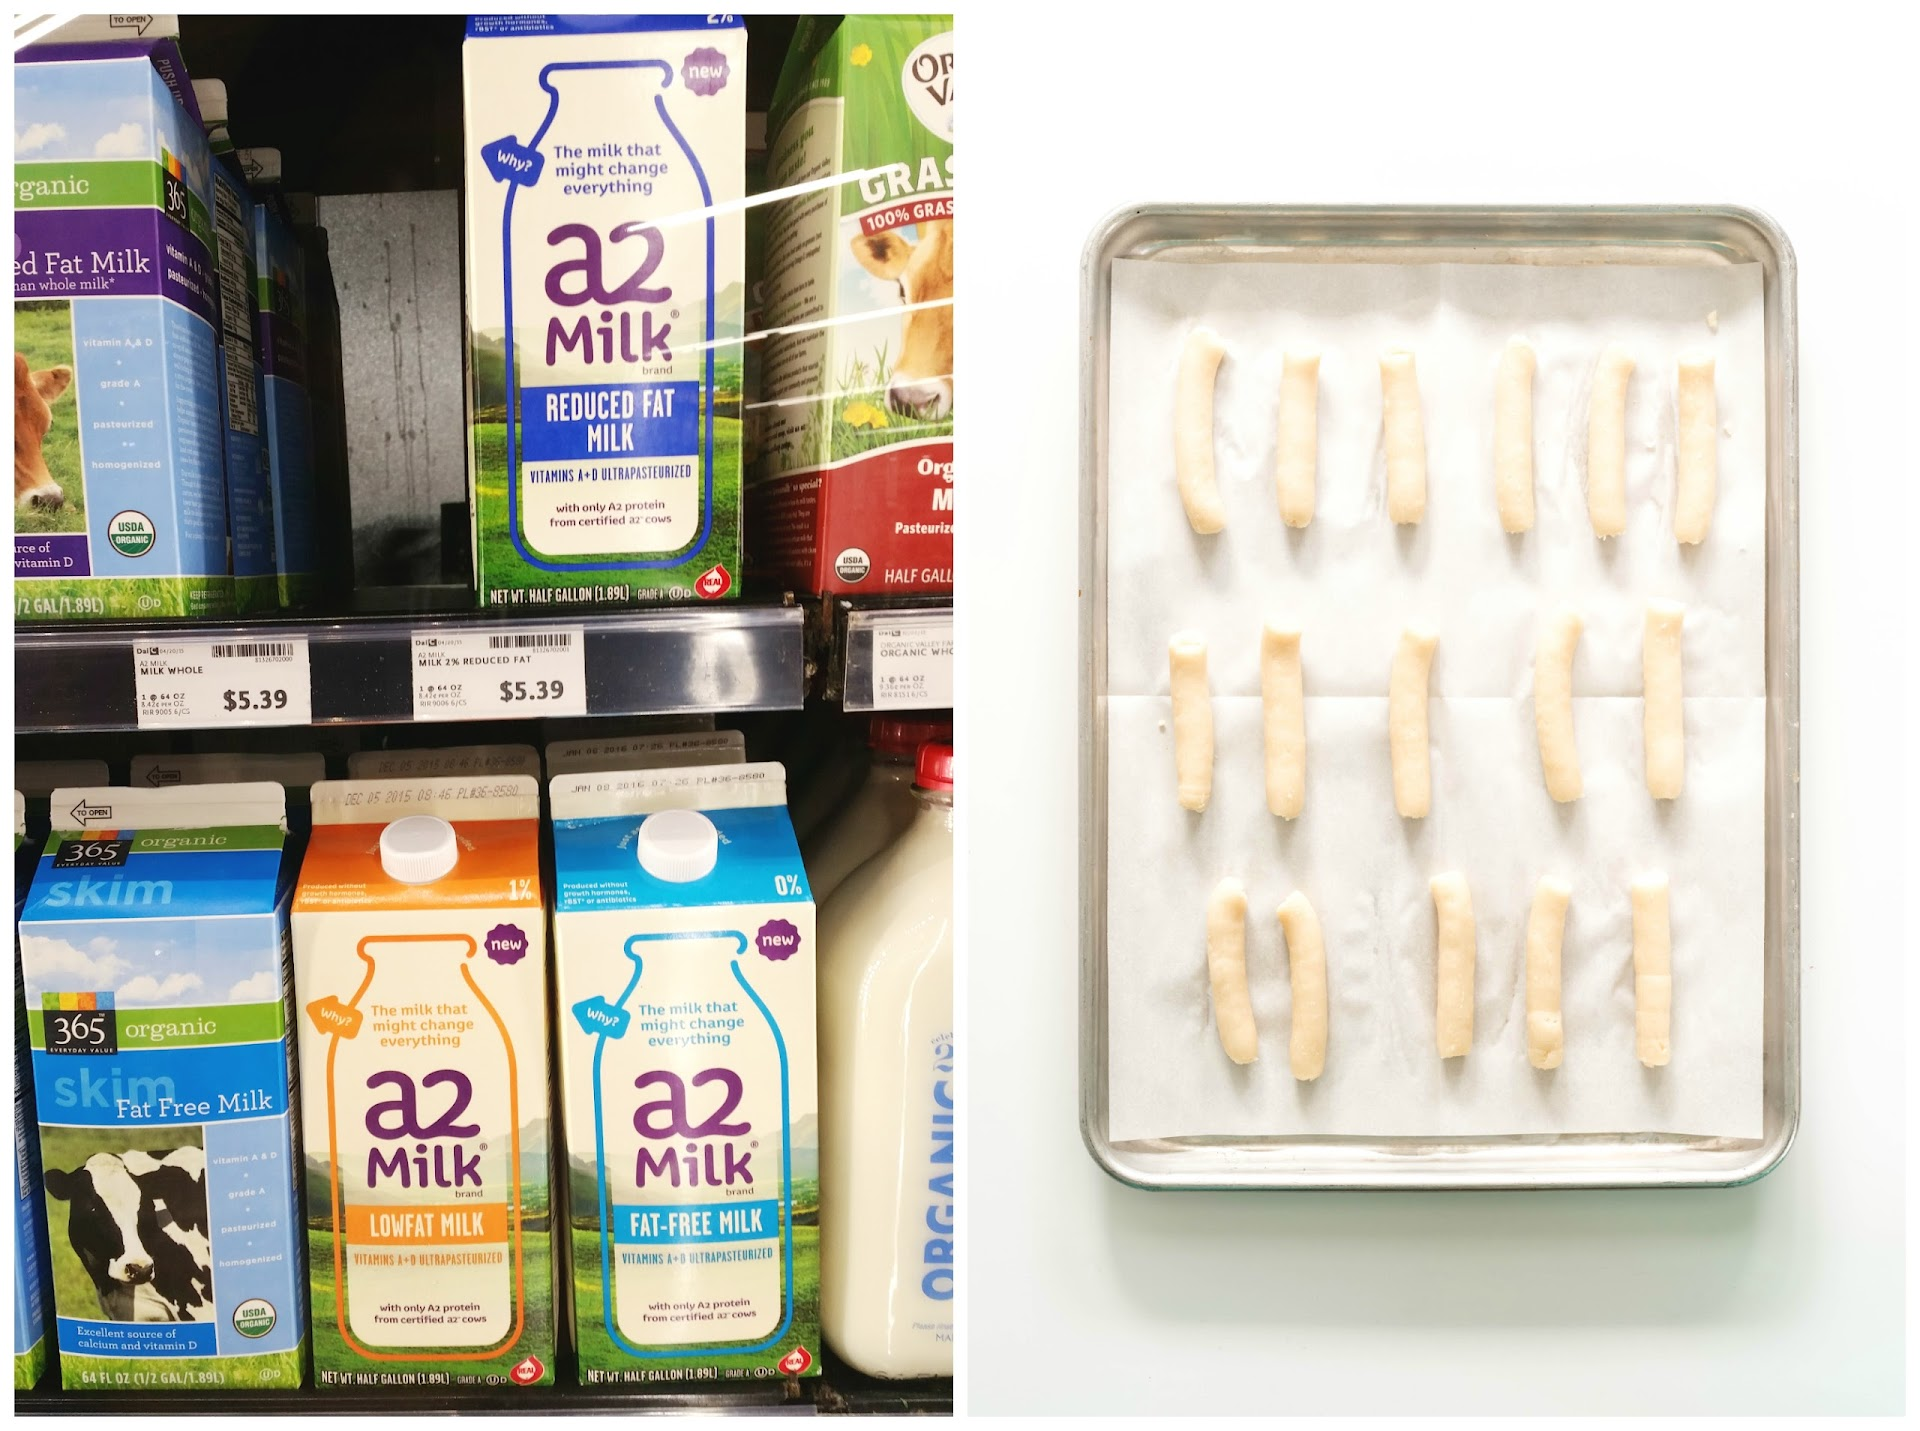 a2 milk review, a1 protein, pd3, dairy free, post dairy digestive disorder foods, whole foods dairy free products